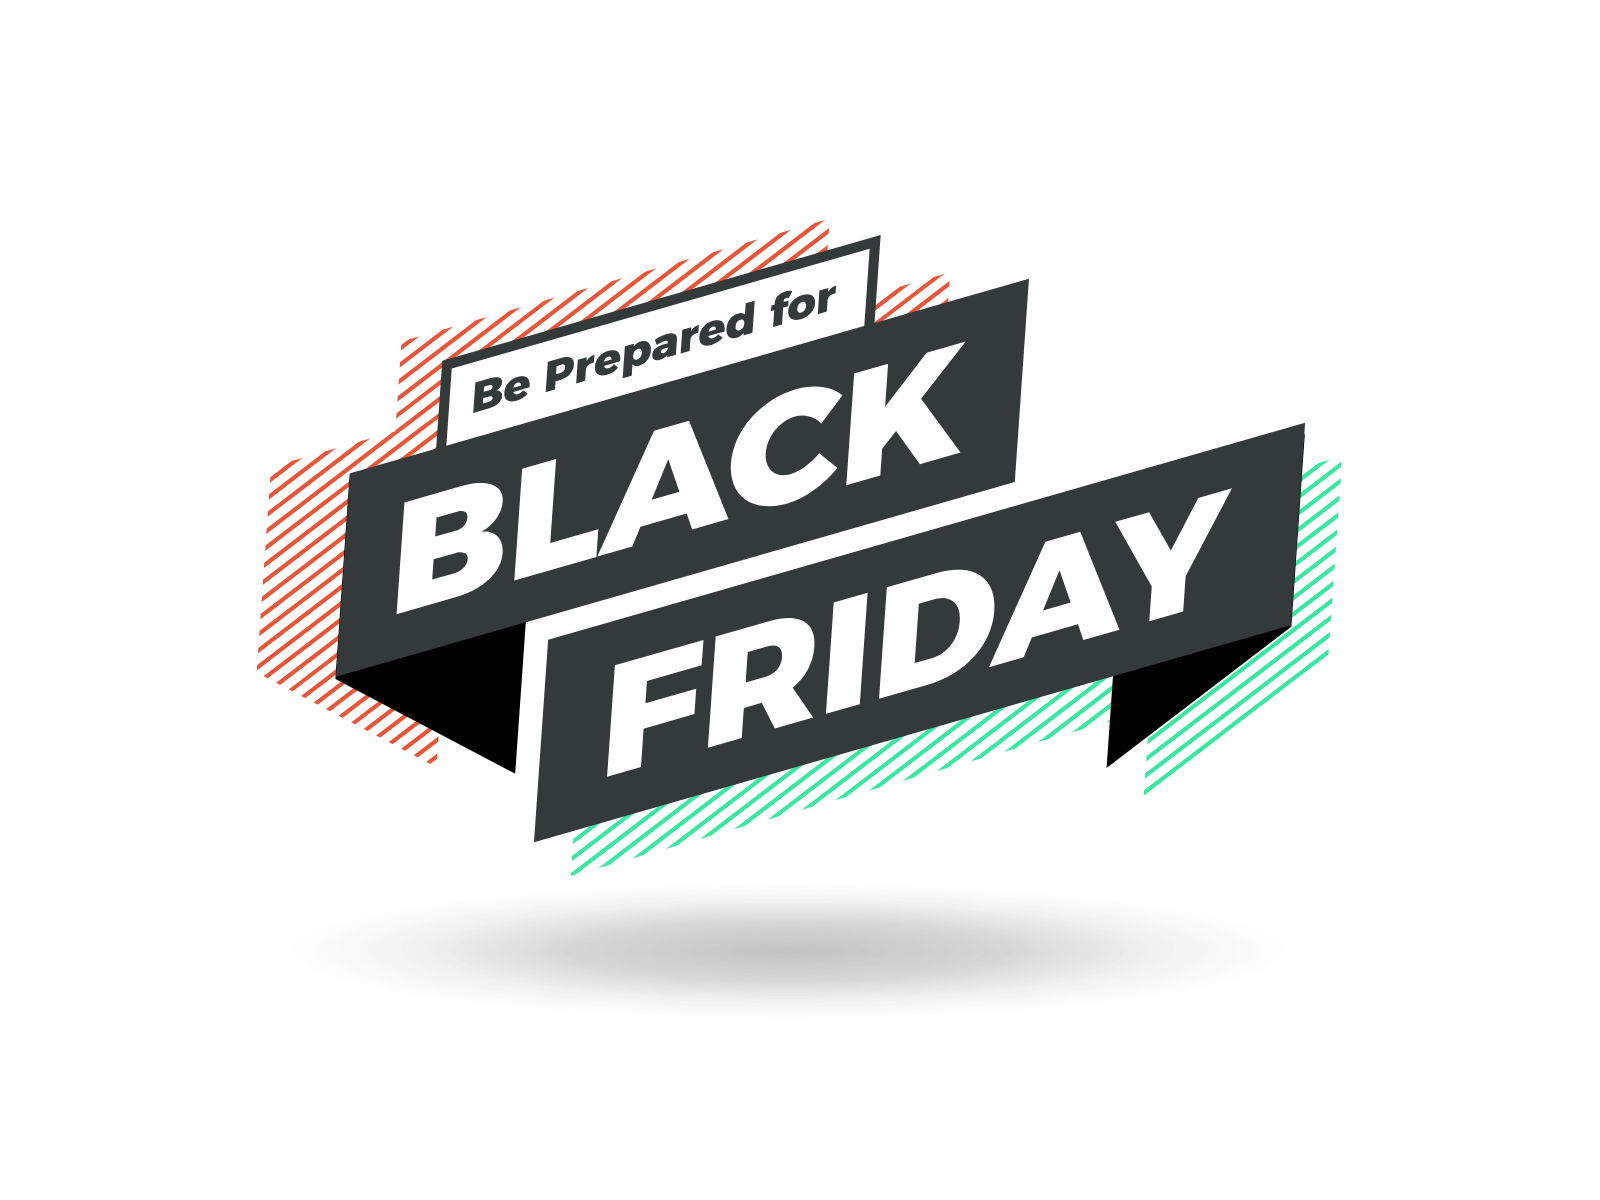 Black Friday is the new …. Friday